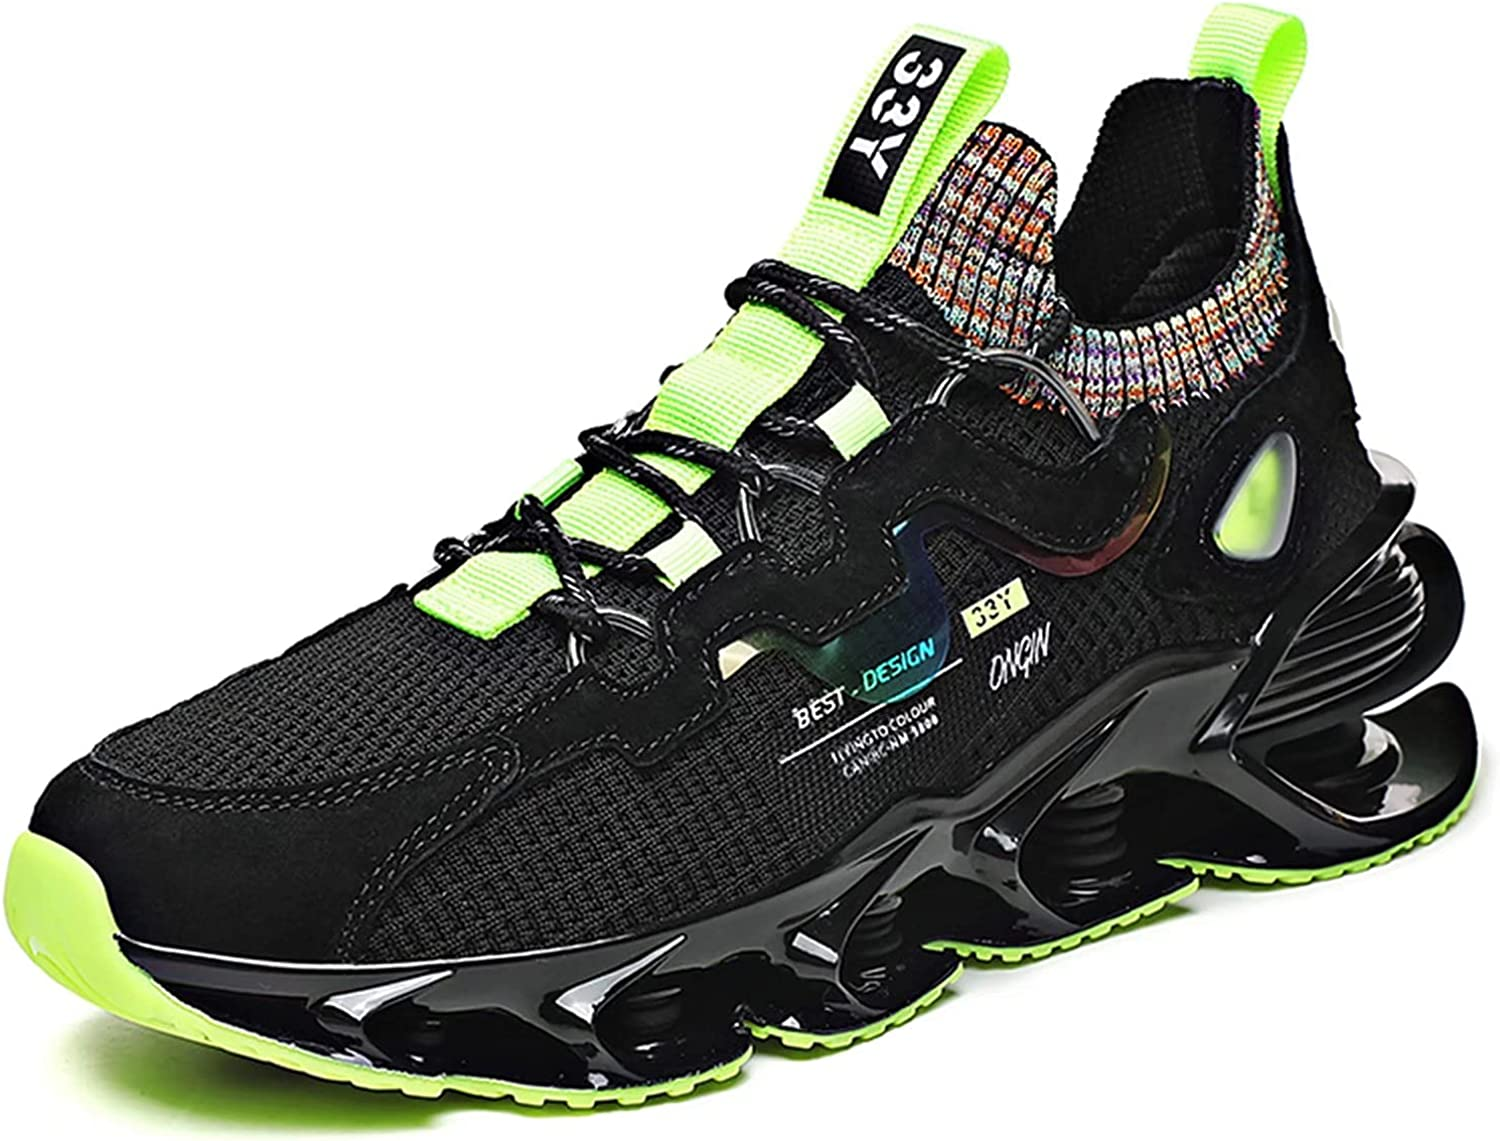 Men's Blade Slip on Running Fashion Athletic Walkin latest Limited price Tennis Shoes